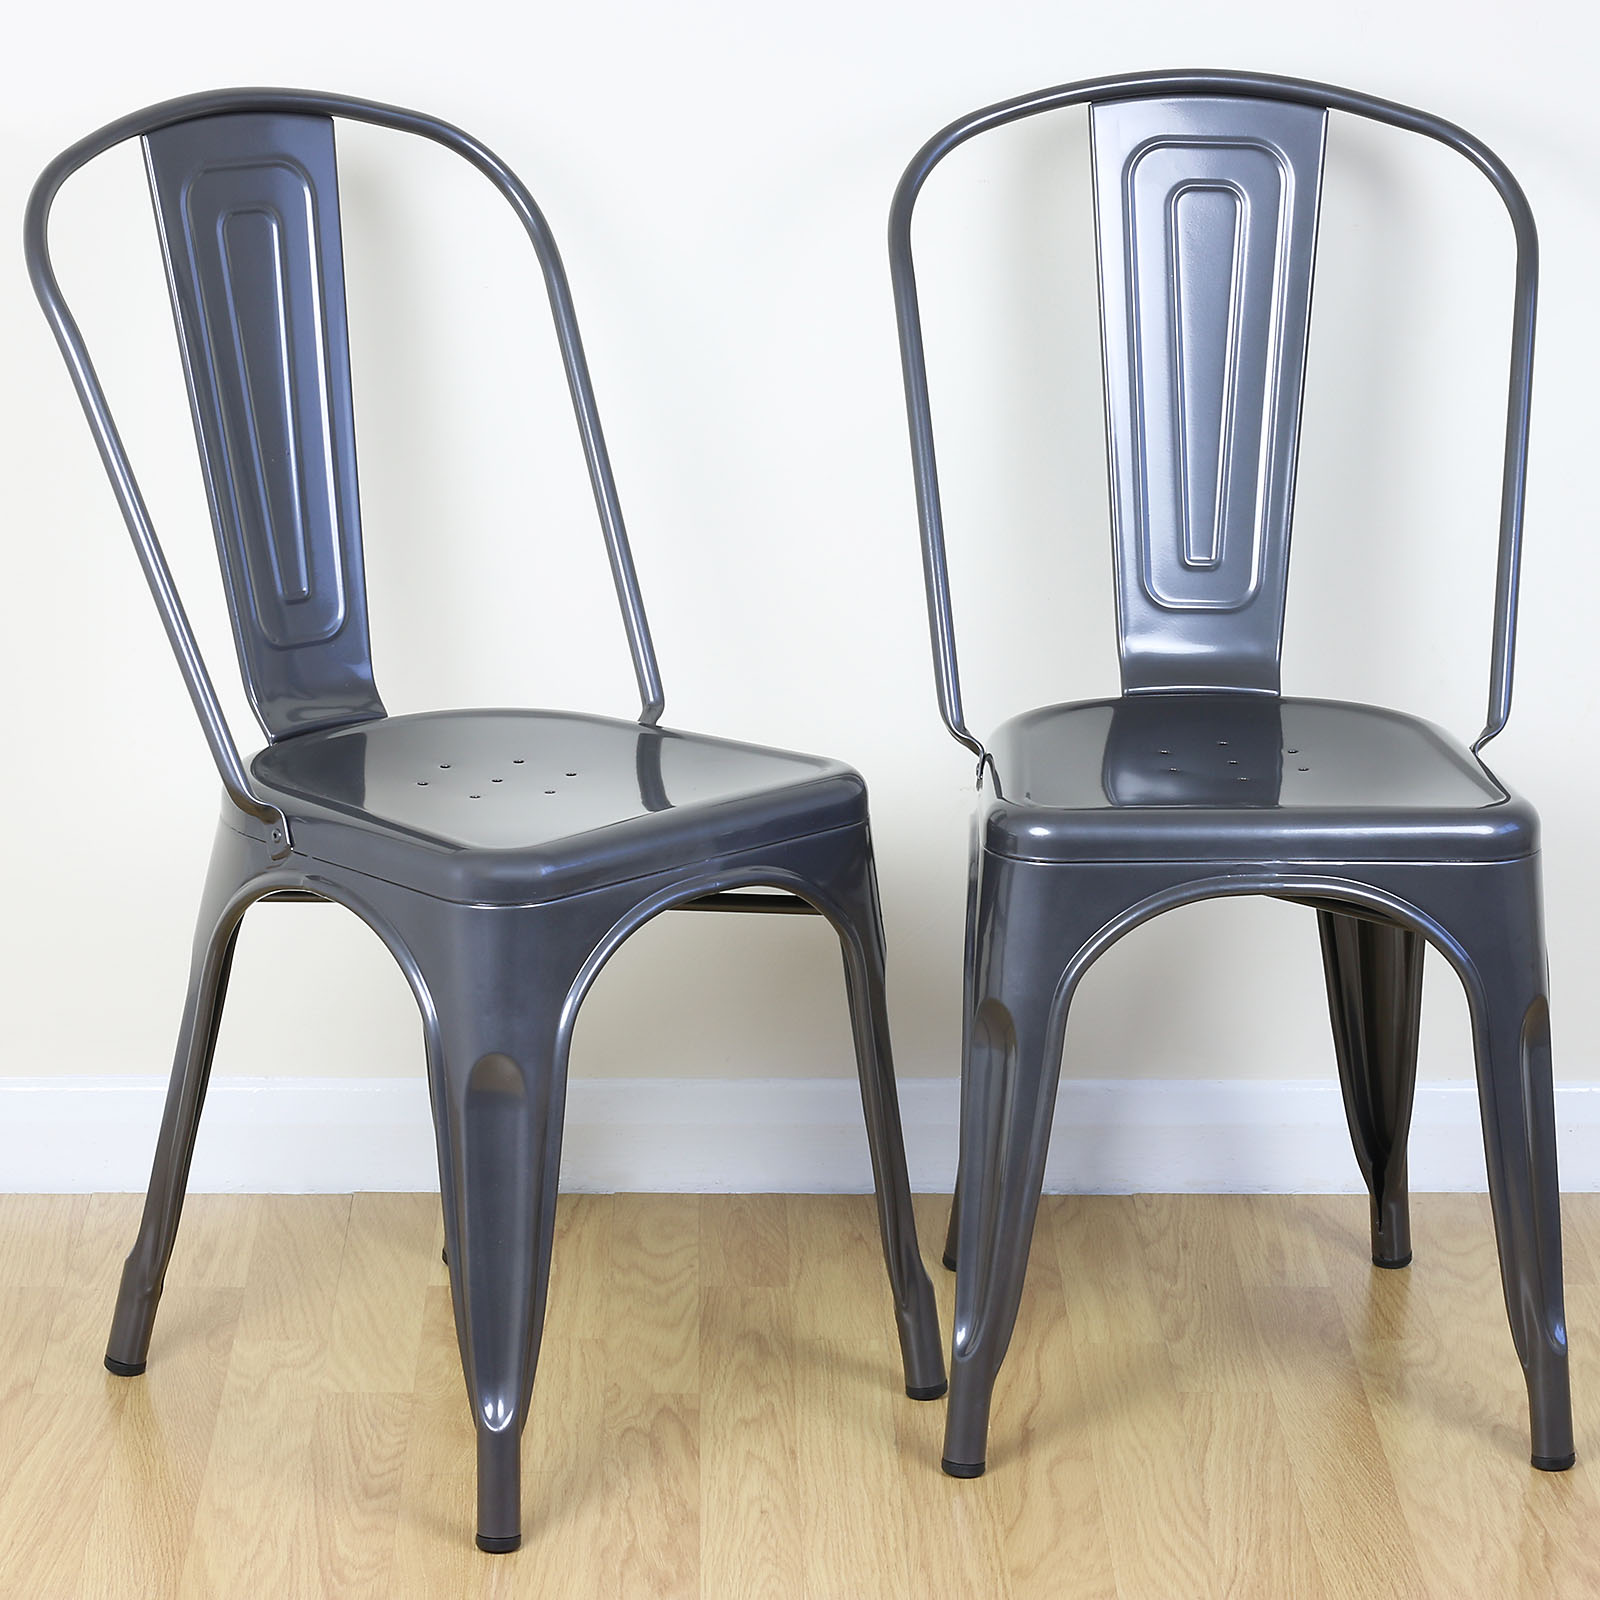 HD wallpapers vintage dining chairs ebay uk zsaearecompress